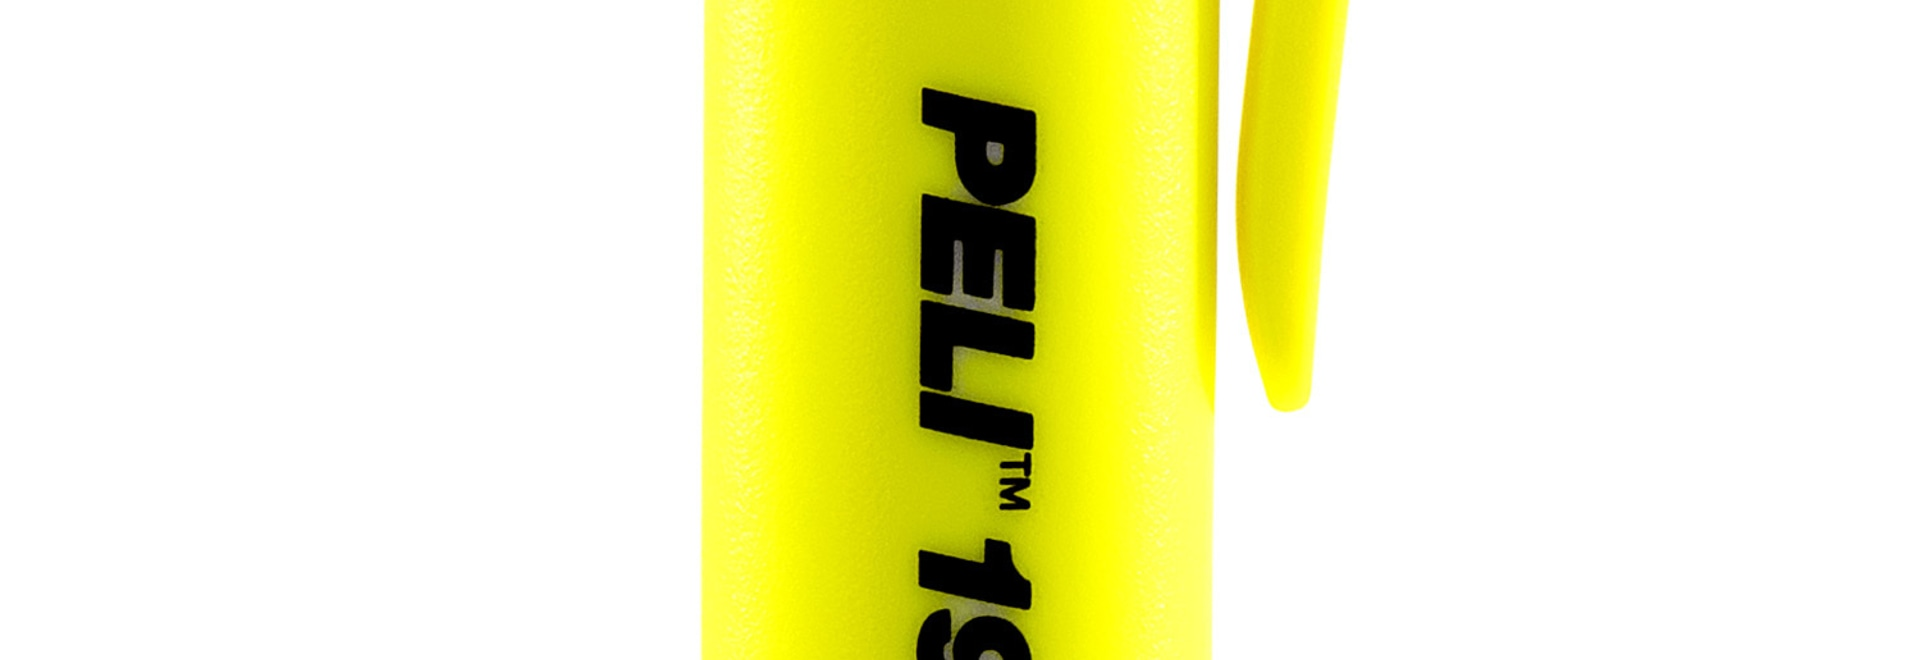 Peli presents Its Slimmest AAA ATEX Zone 0&1 Torches: 1975Z0 & 1975Z1 LED Penlights